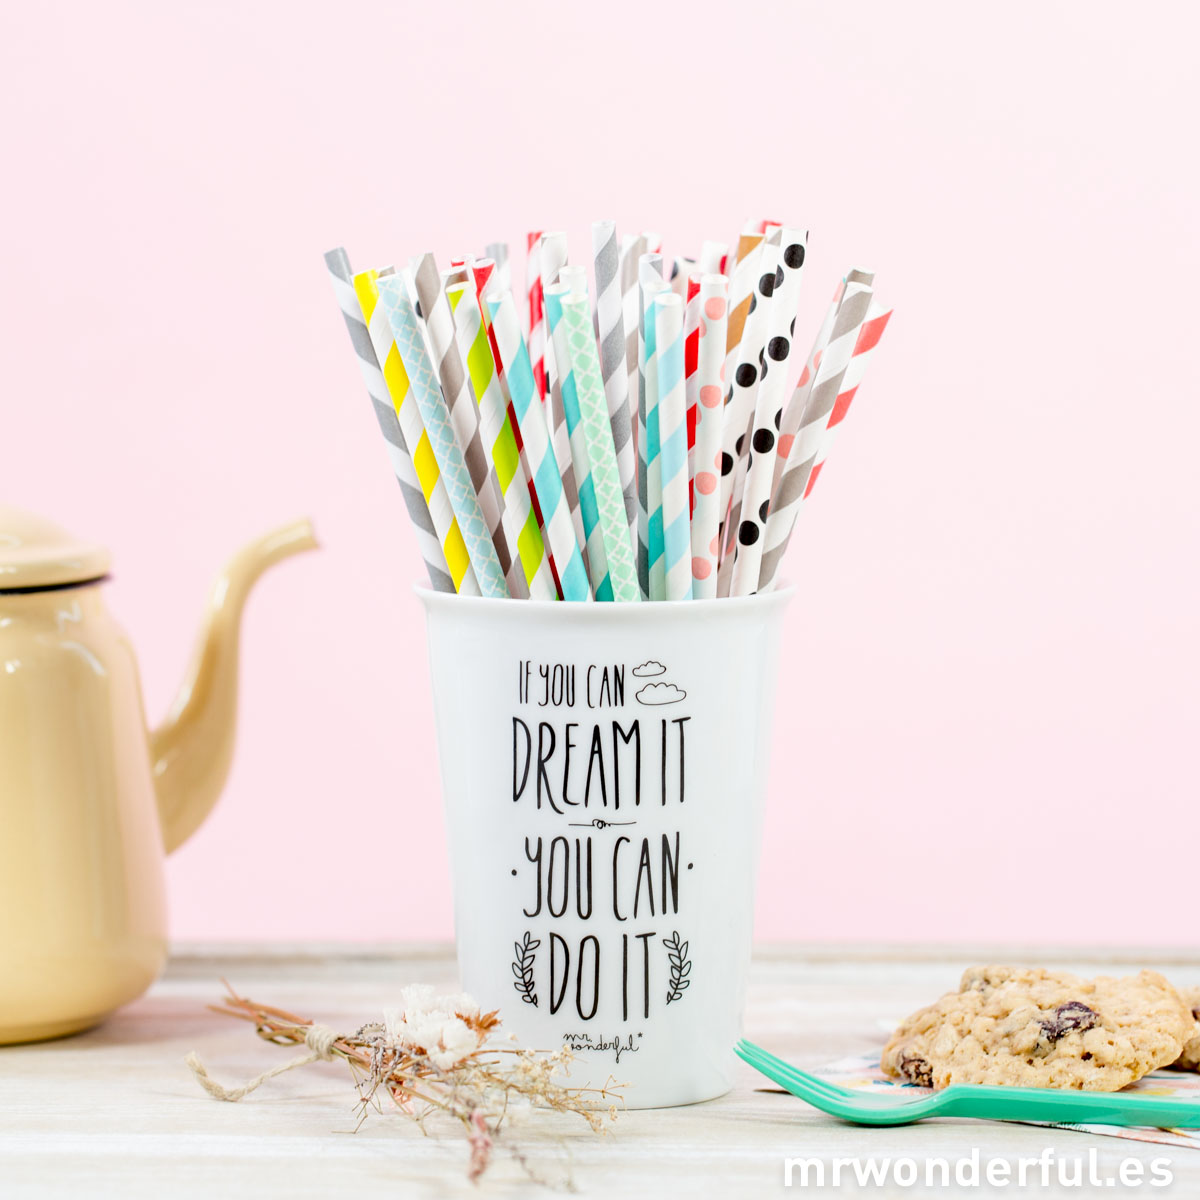 mrwonderful_843654719058_WON-175_if-you-can-dream-it-you-can-do-it_taza-take-away-9